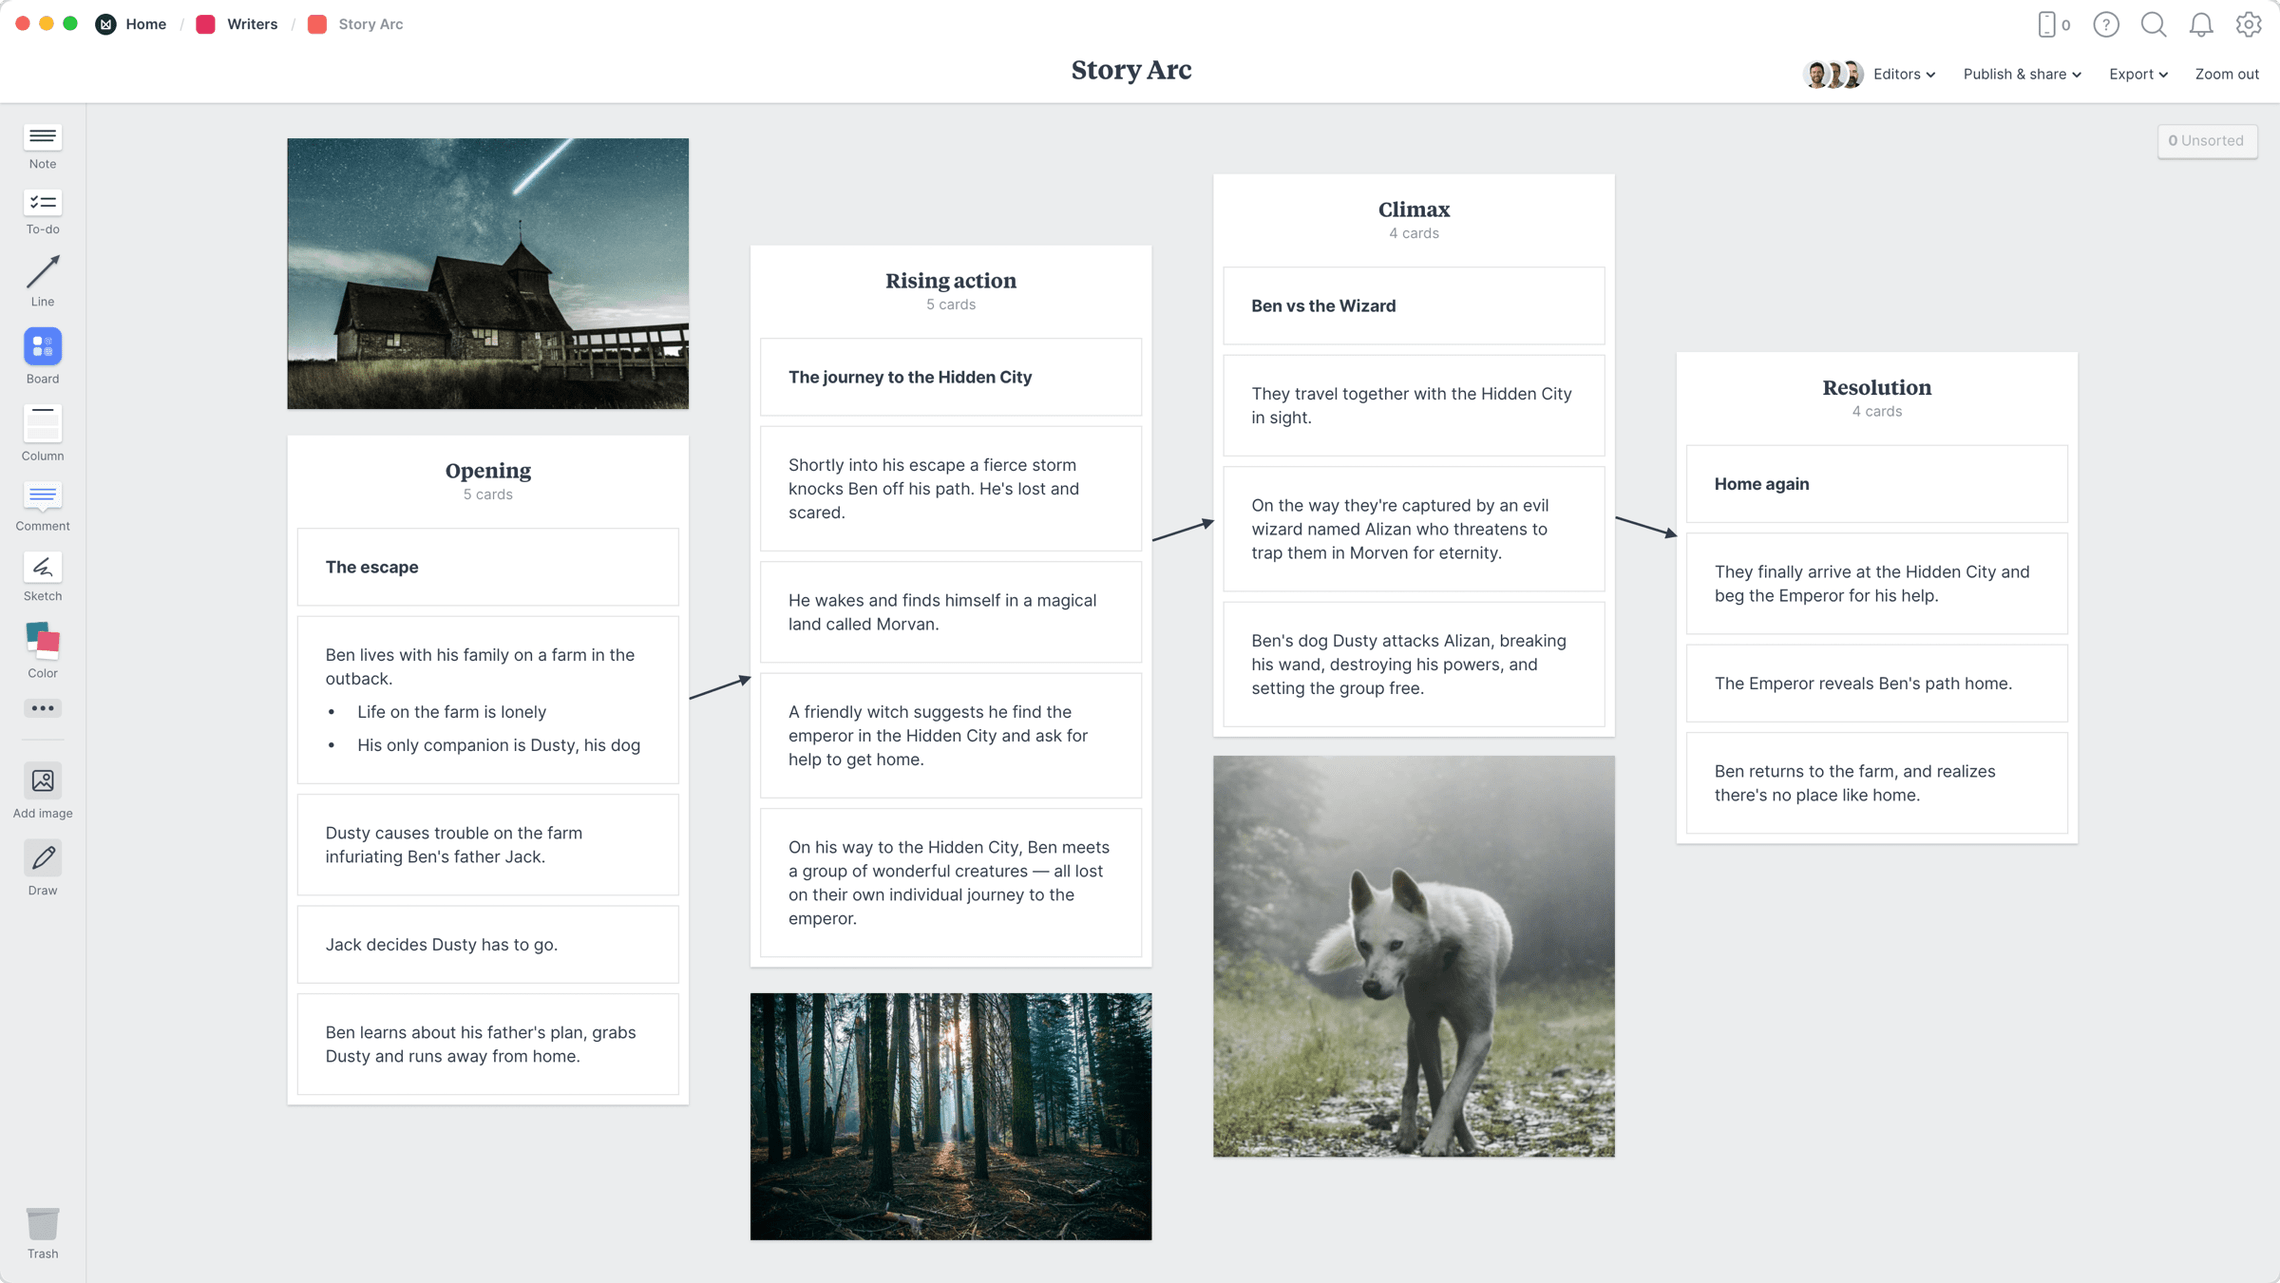 Story Arc Template, within the Milanote app